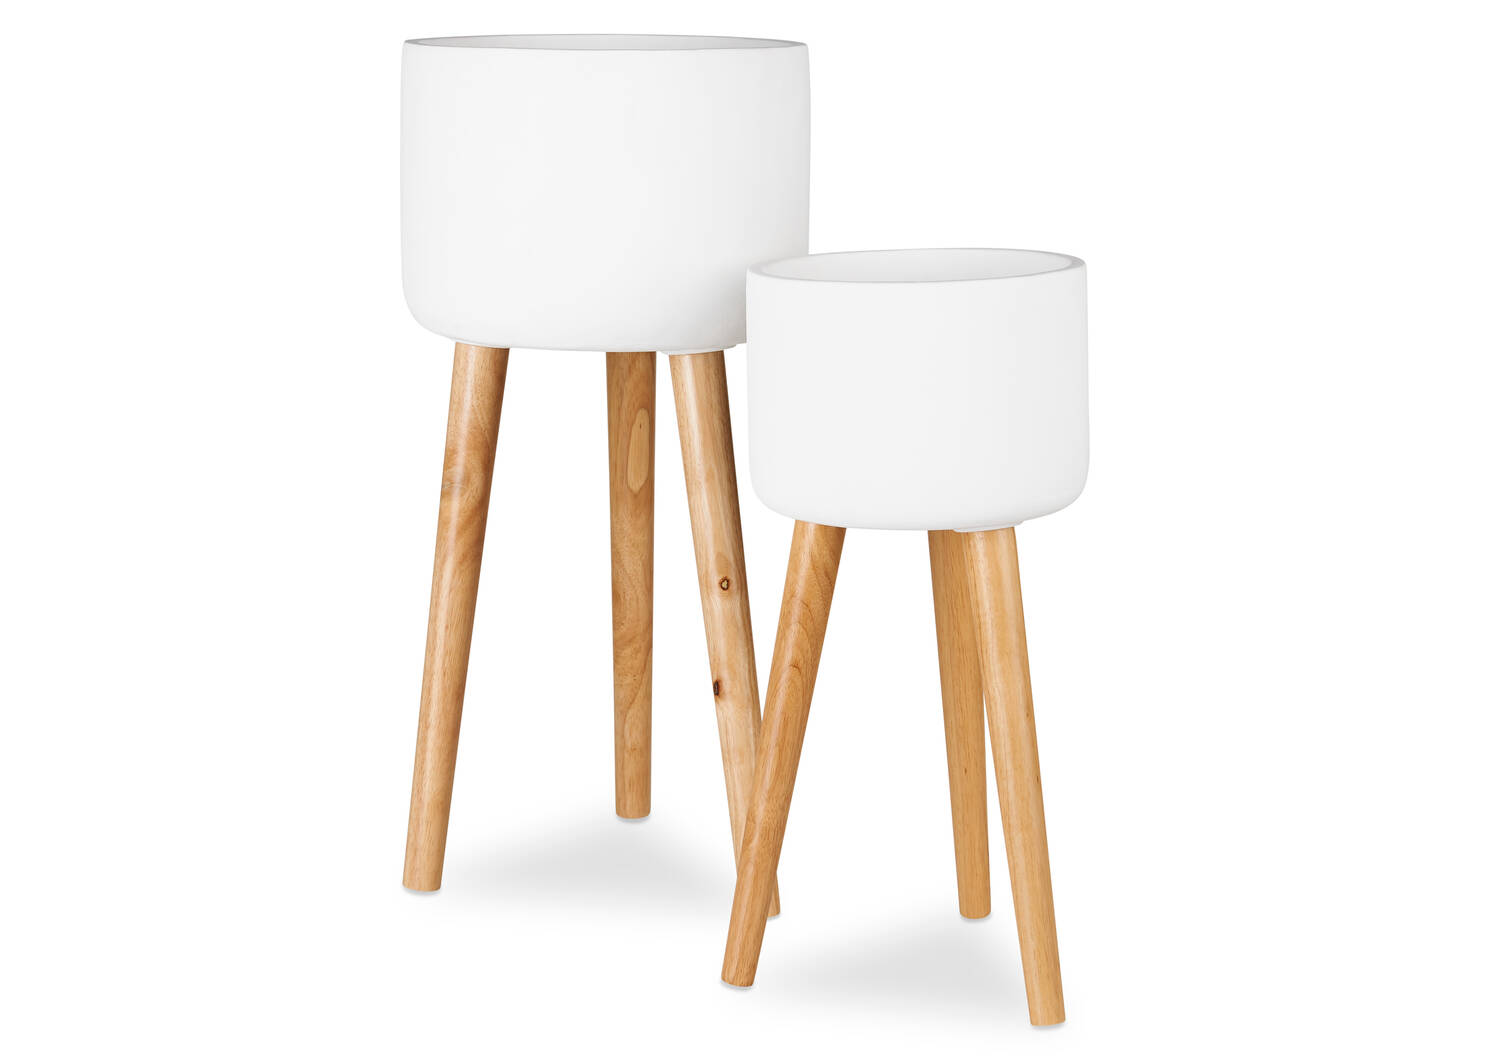 Kyrie Standing Planters -White